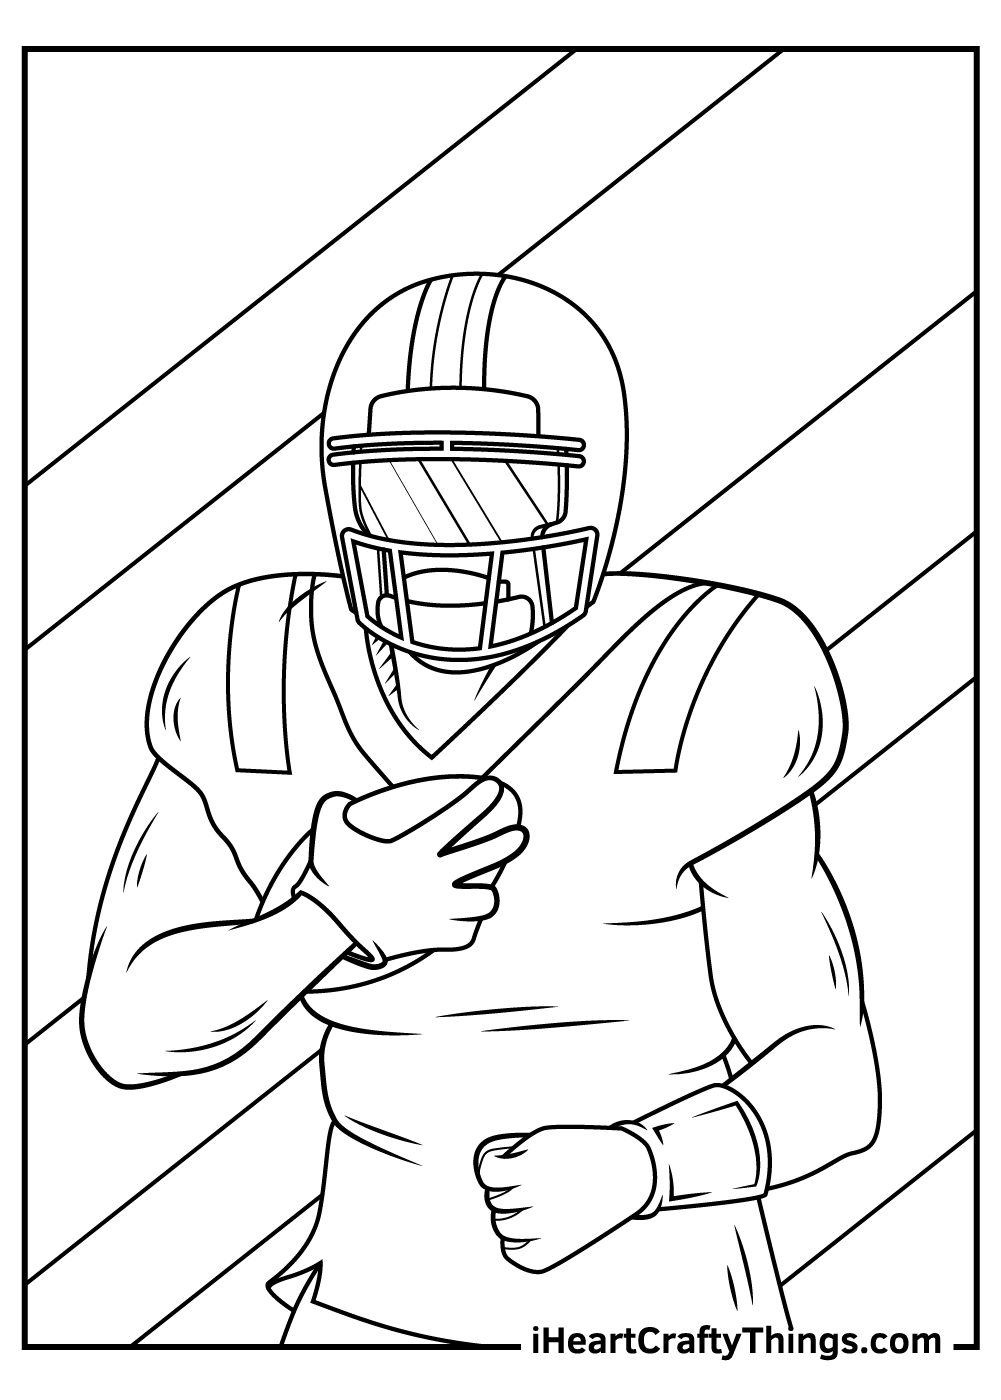 NFL coloring pages to print